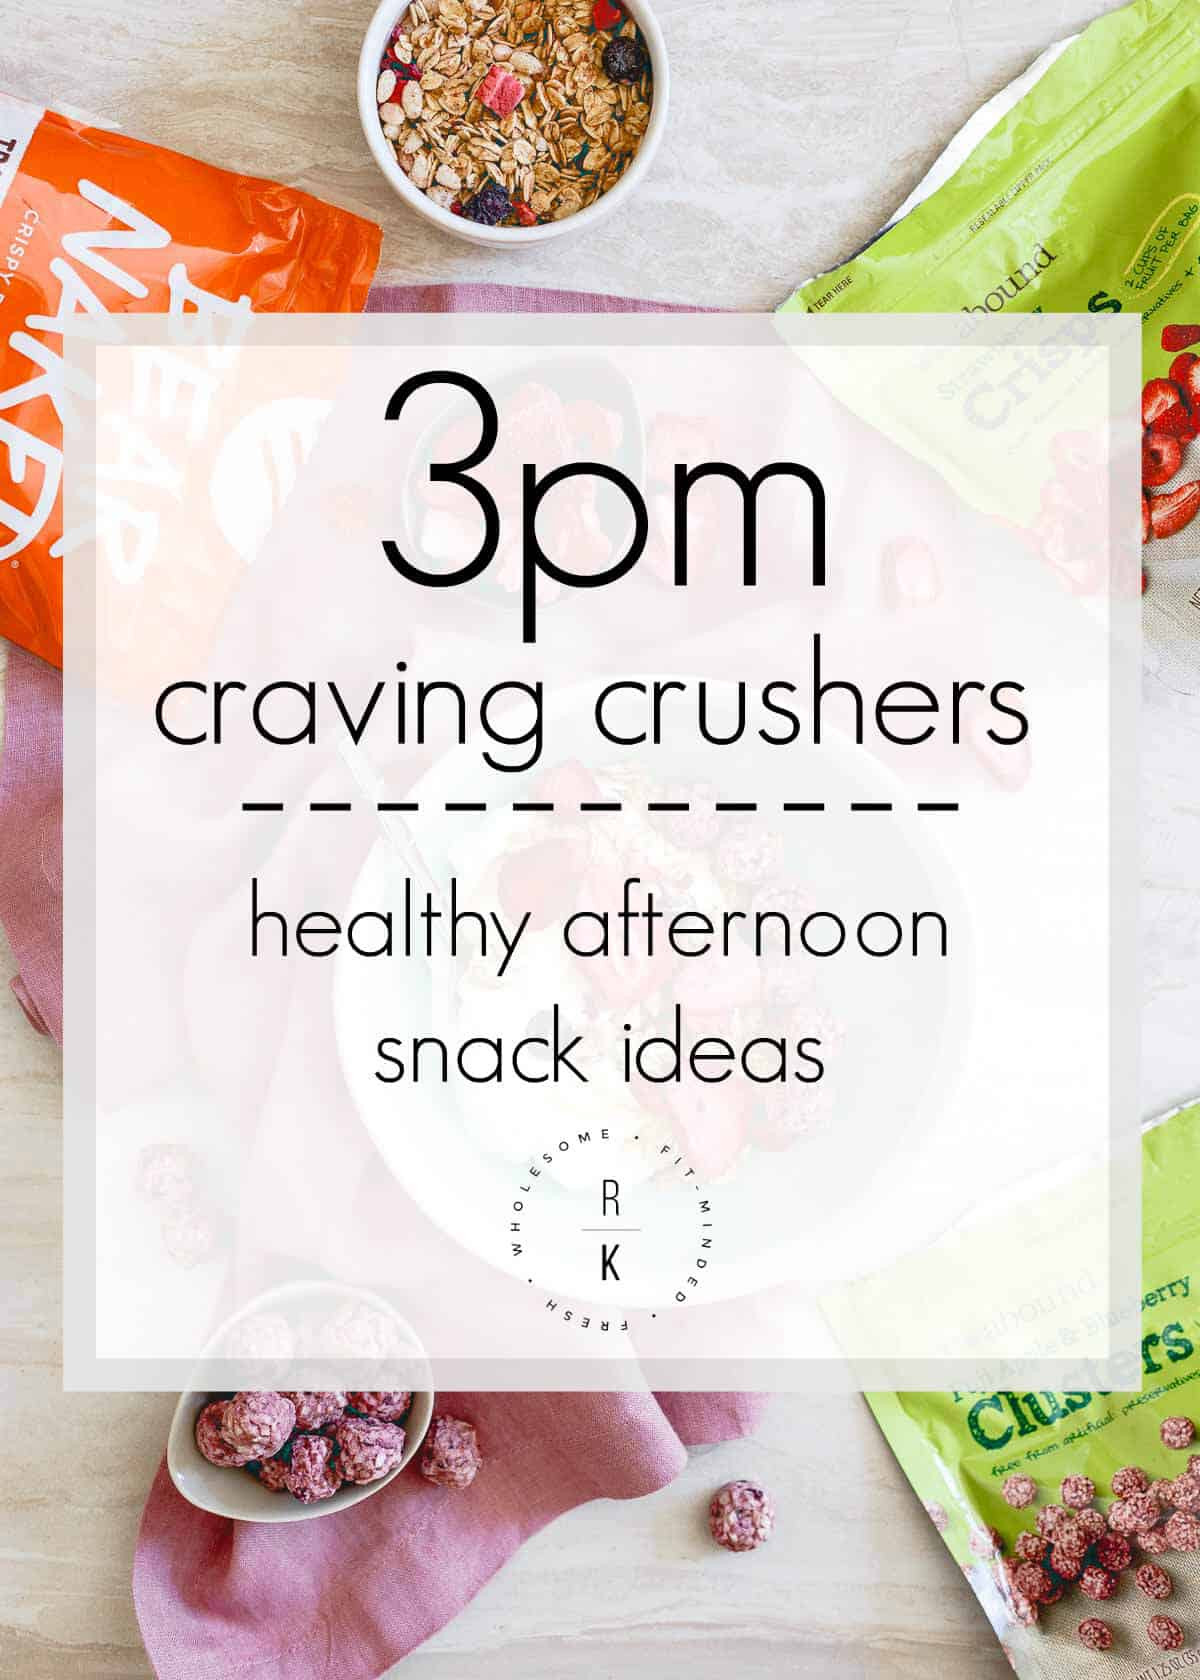 Healthy Afternoon Snacks For Work  3PM Craving Crushers Healthy Afternoon Snack Ideas